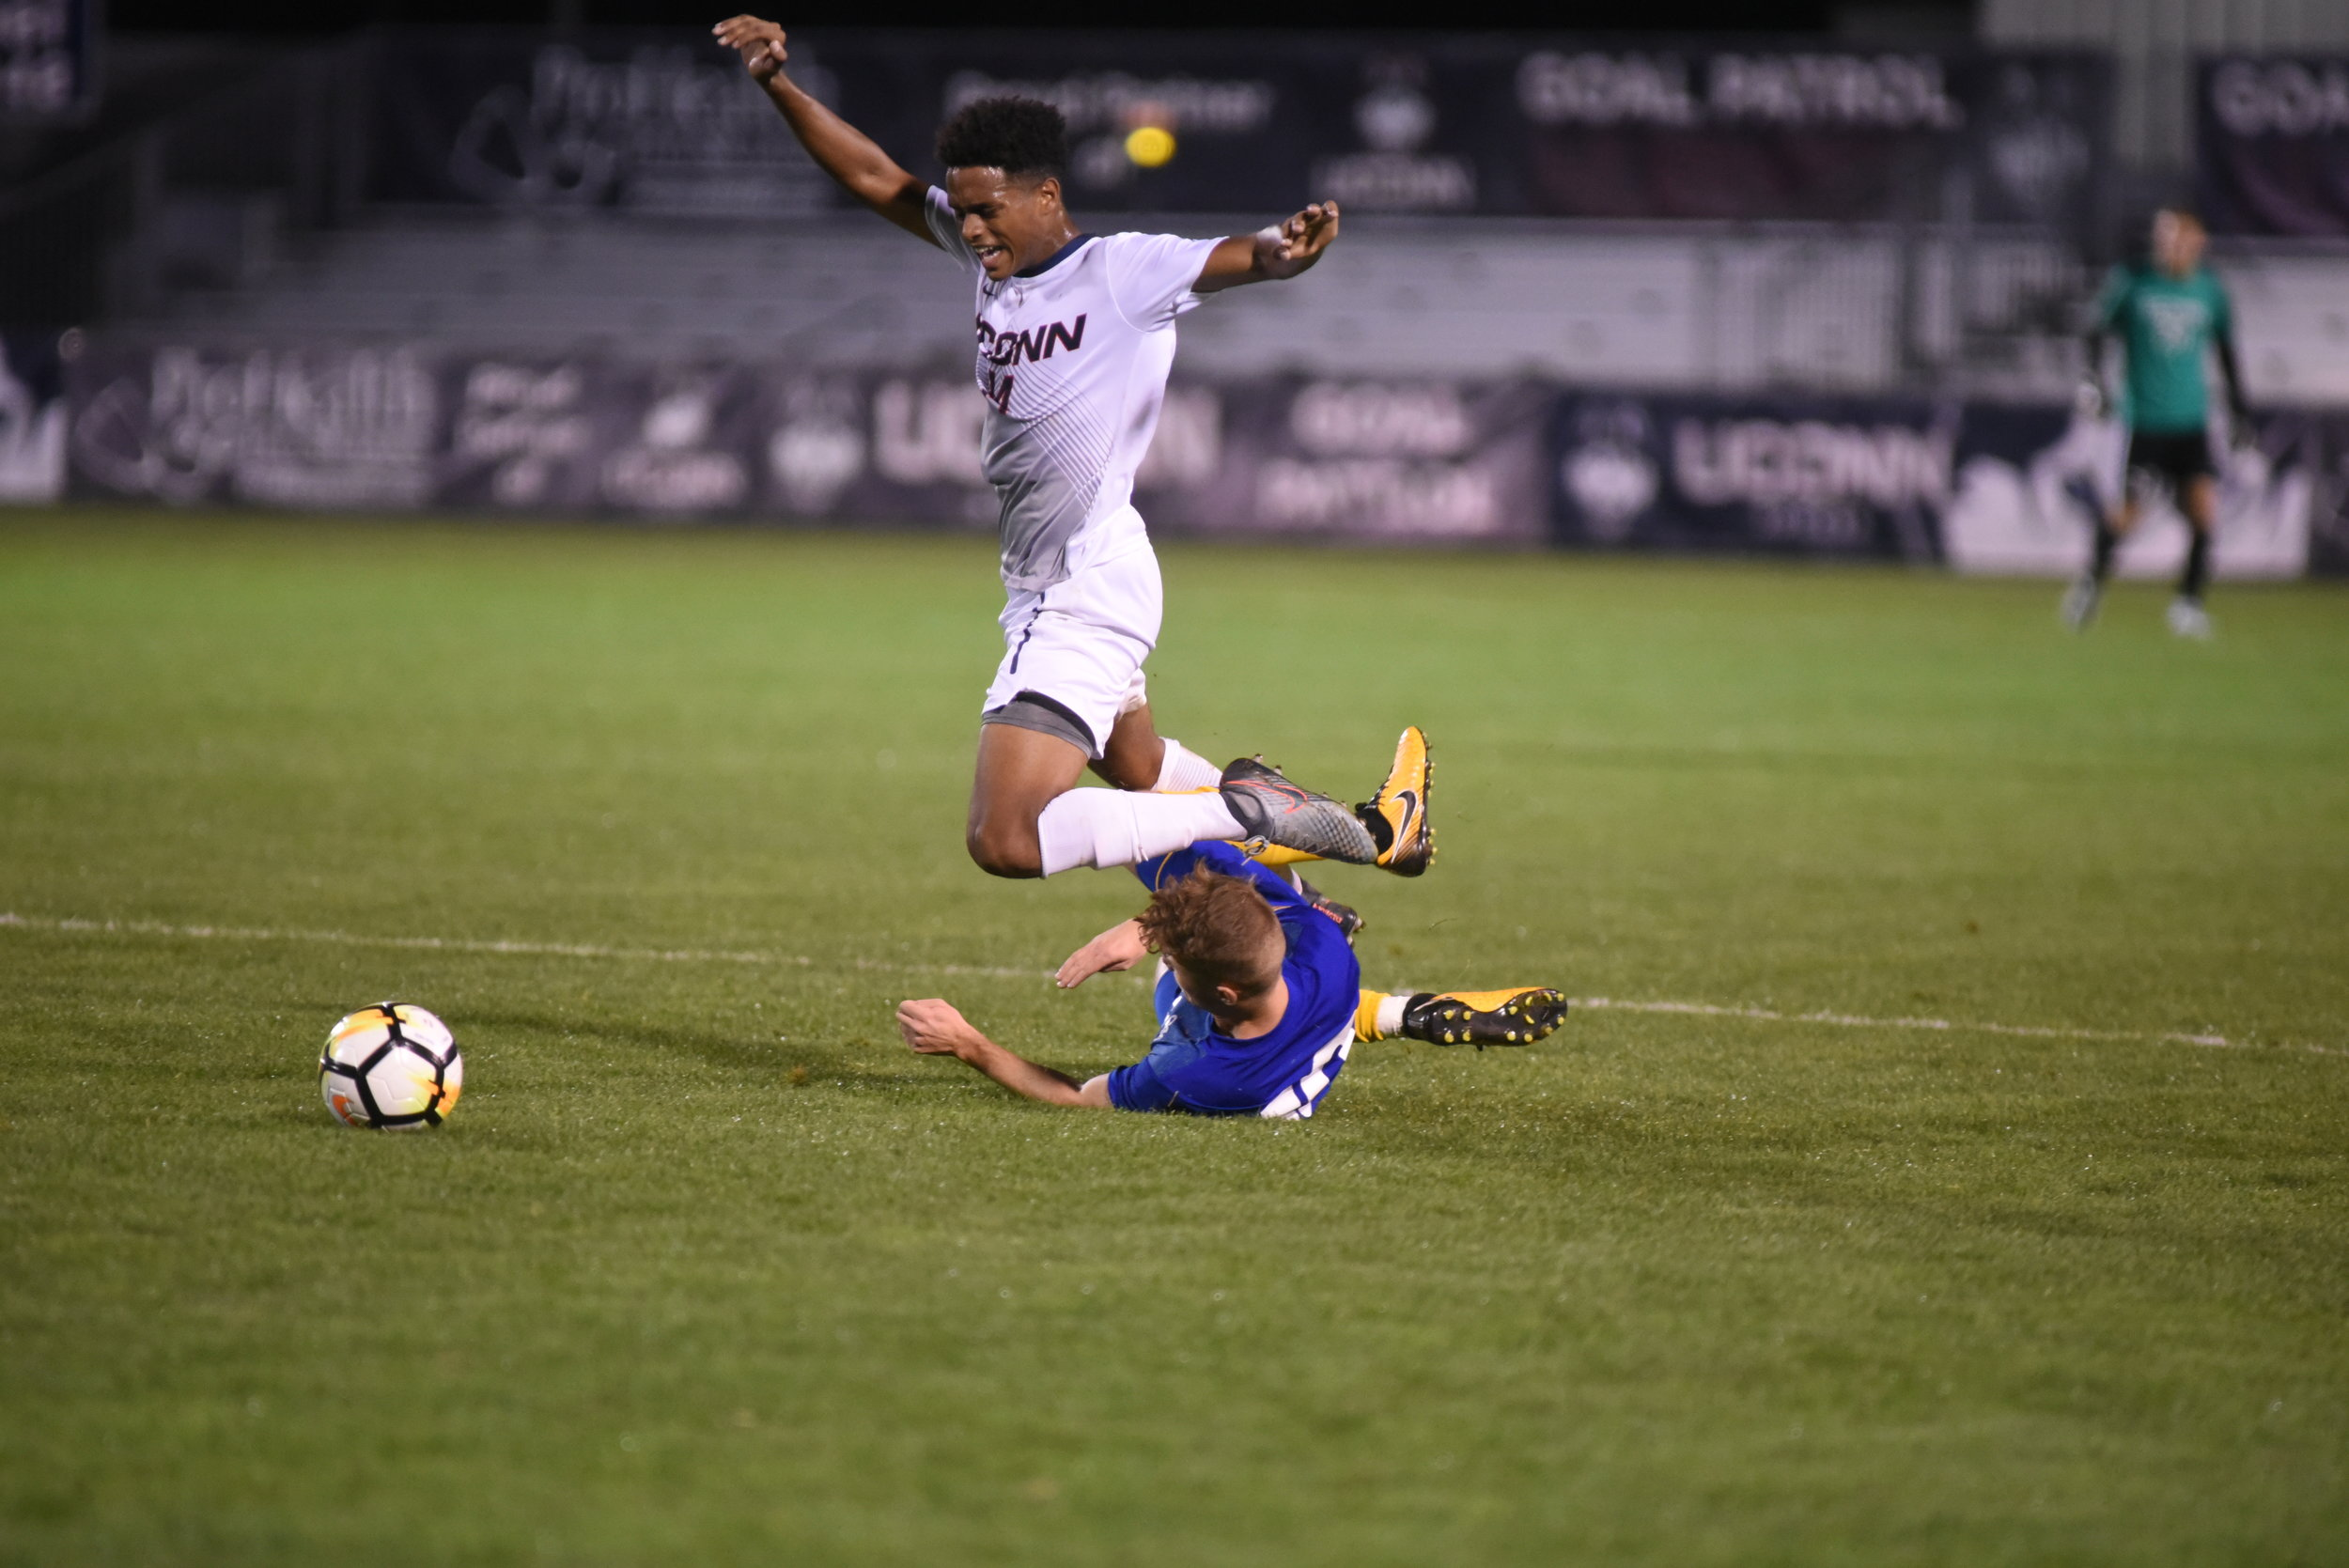 The Men's Soccer team won against Hofstra on Tuesday, September 12. Their next home game is Saturday against North Florida. (The Daily Campus/Charlotte Lao)